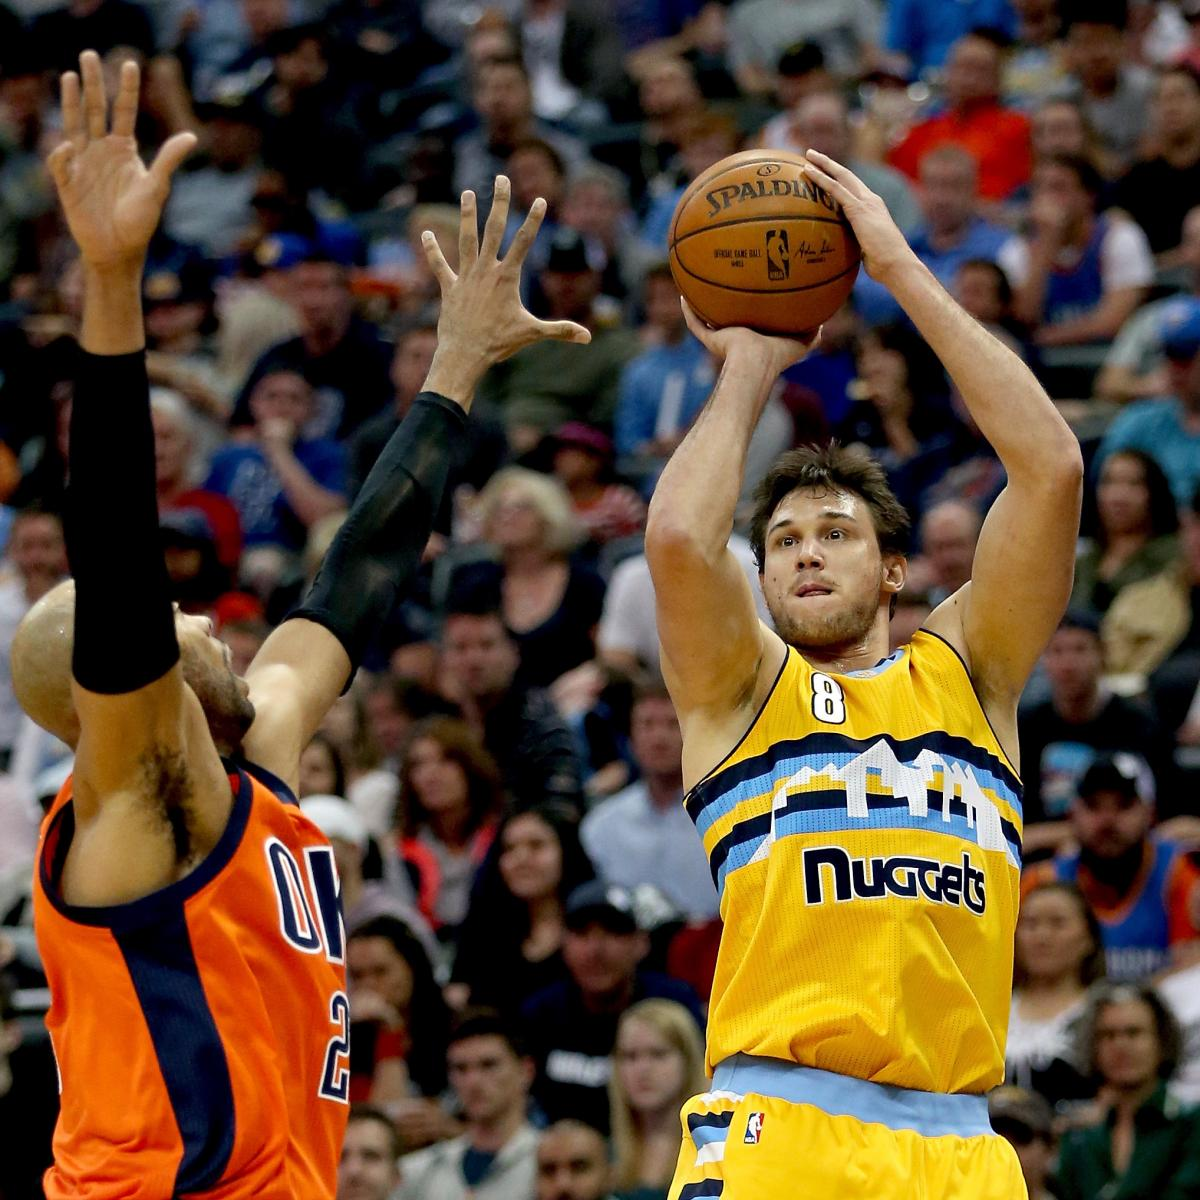 Nuggets Clippers Highlights: Danilo Gallinari Reportedly Close To Clippers Sign-and